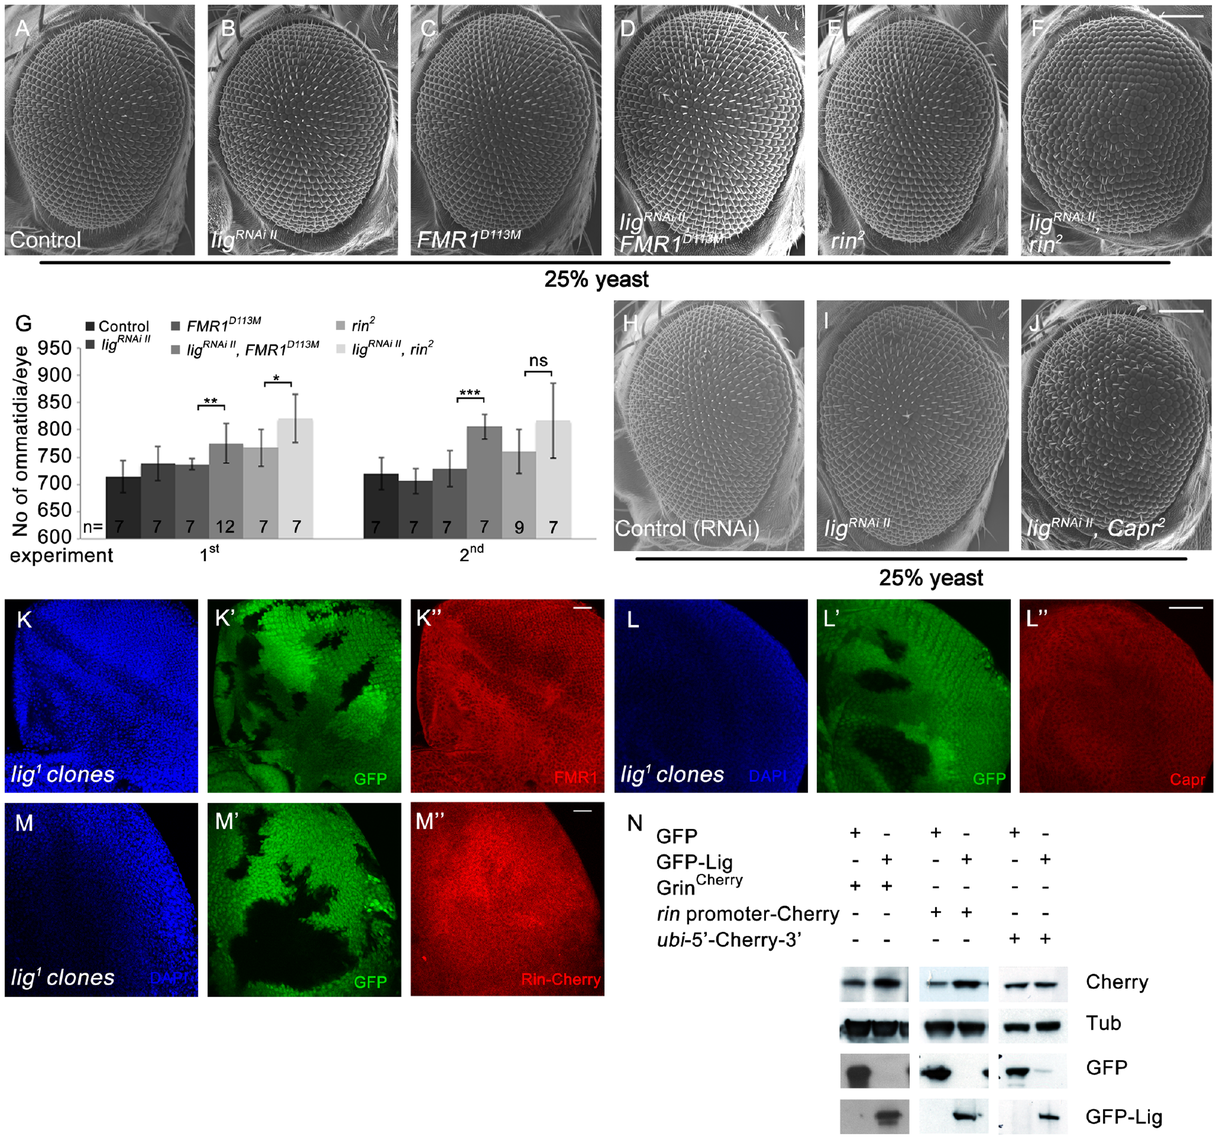 Lig cooperates with FMR1, Rin and Capr in growth control and regulates <i>rin</i> at the transcriptional level.